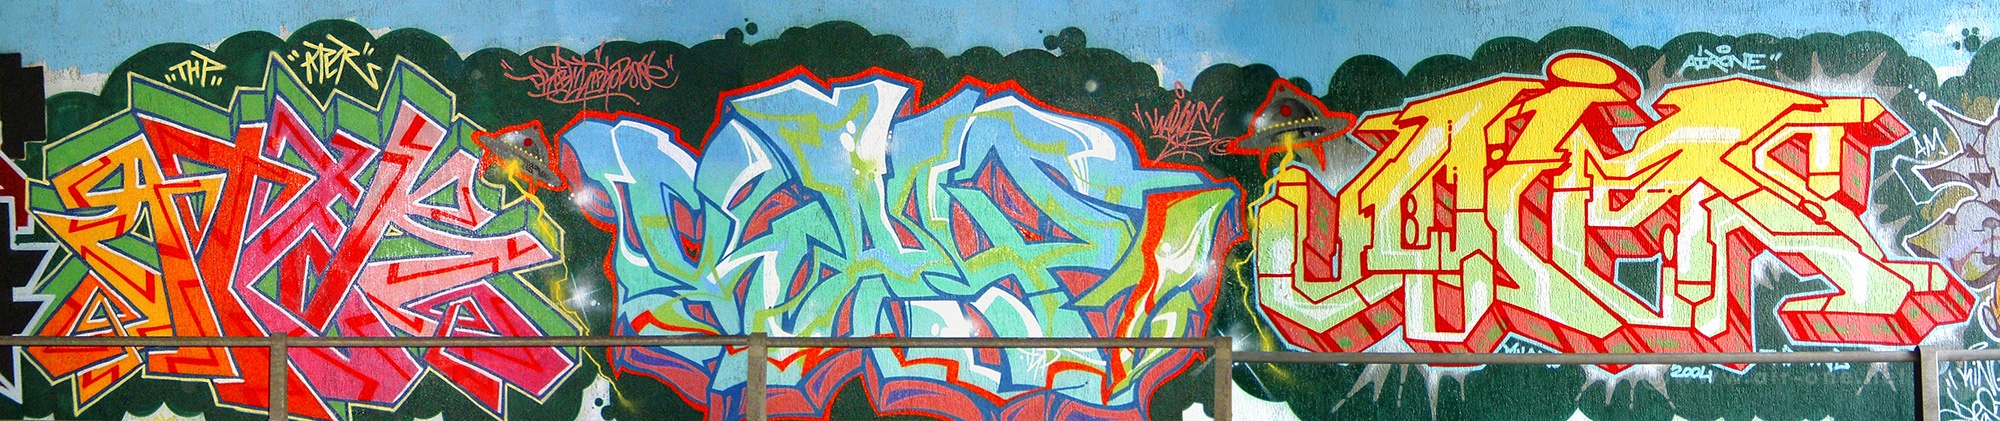 Ater KayOne Airone - Friends Of Friends Jam - Cesate - 2004